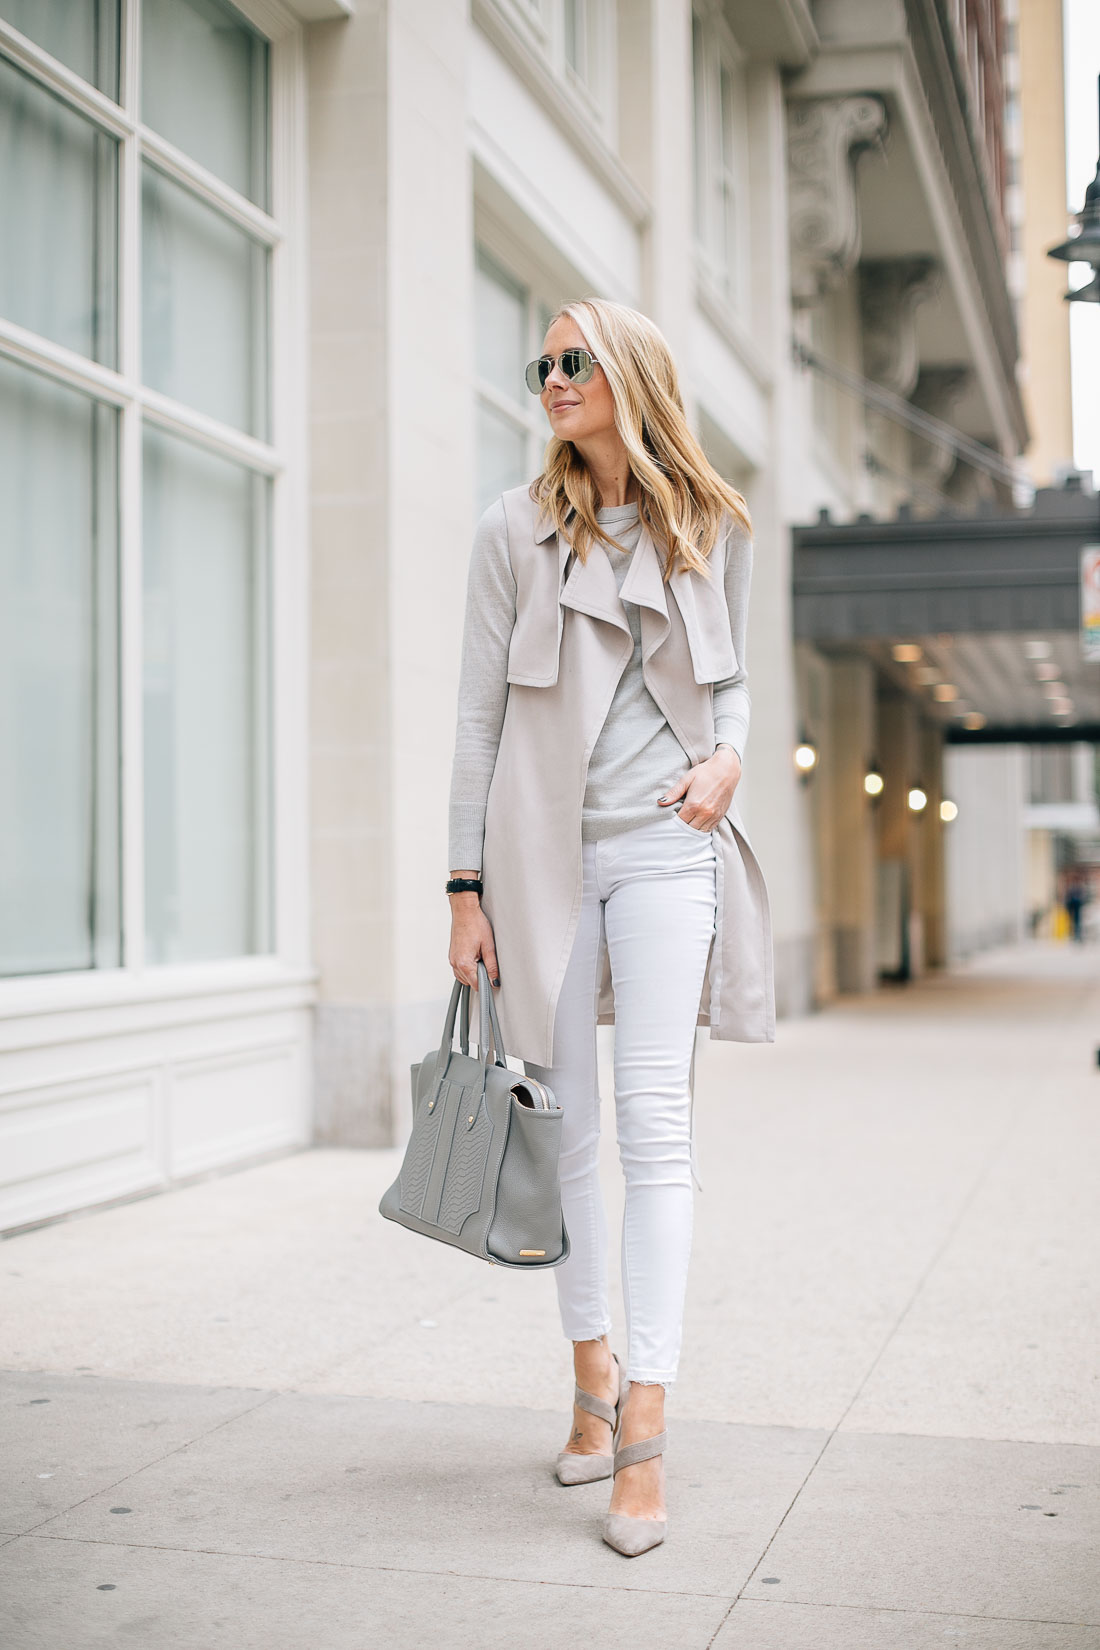 fashion-jackson-club-monaco-trench-vest-white-skinny-jeans-grey-sweater-grey-tote